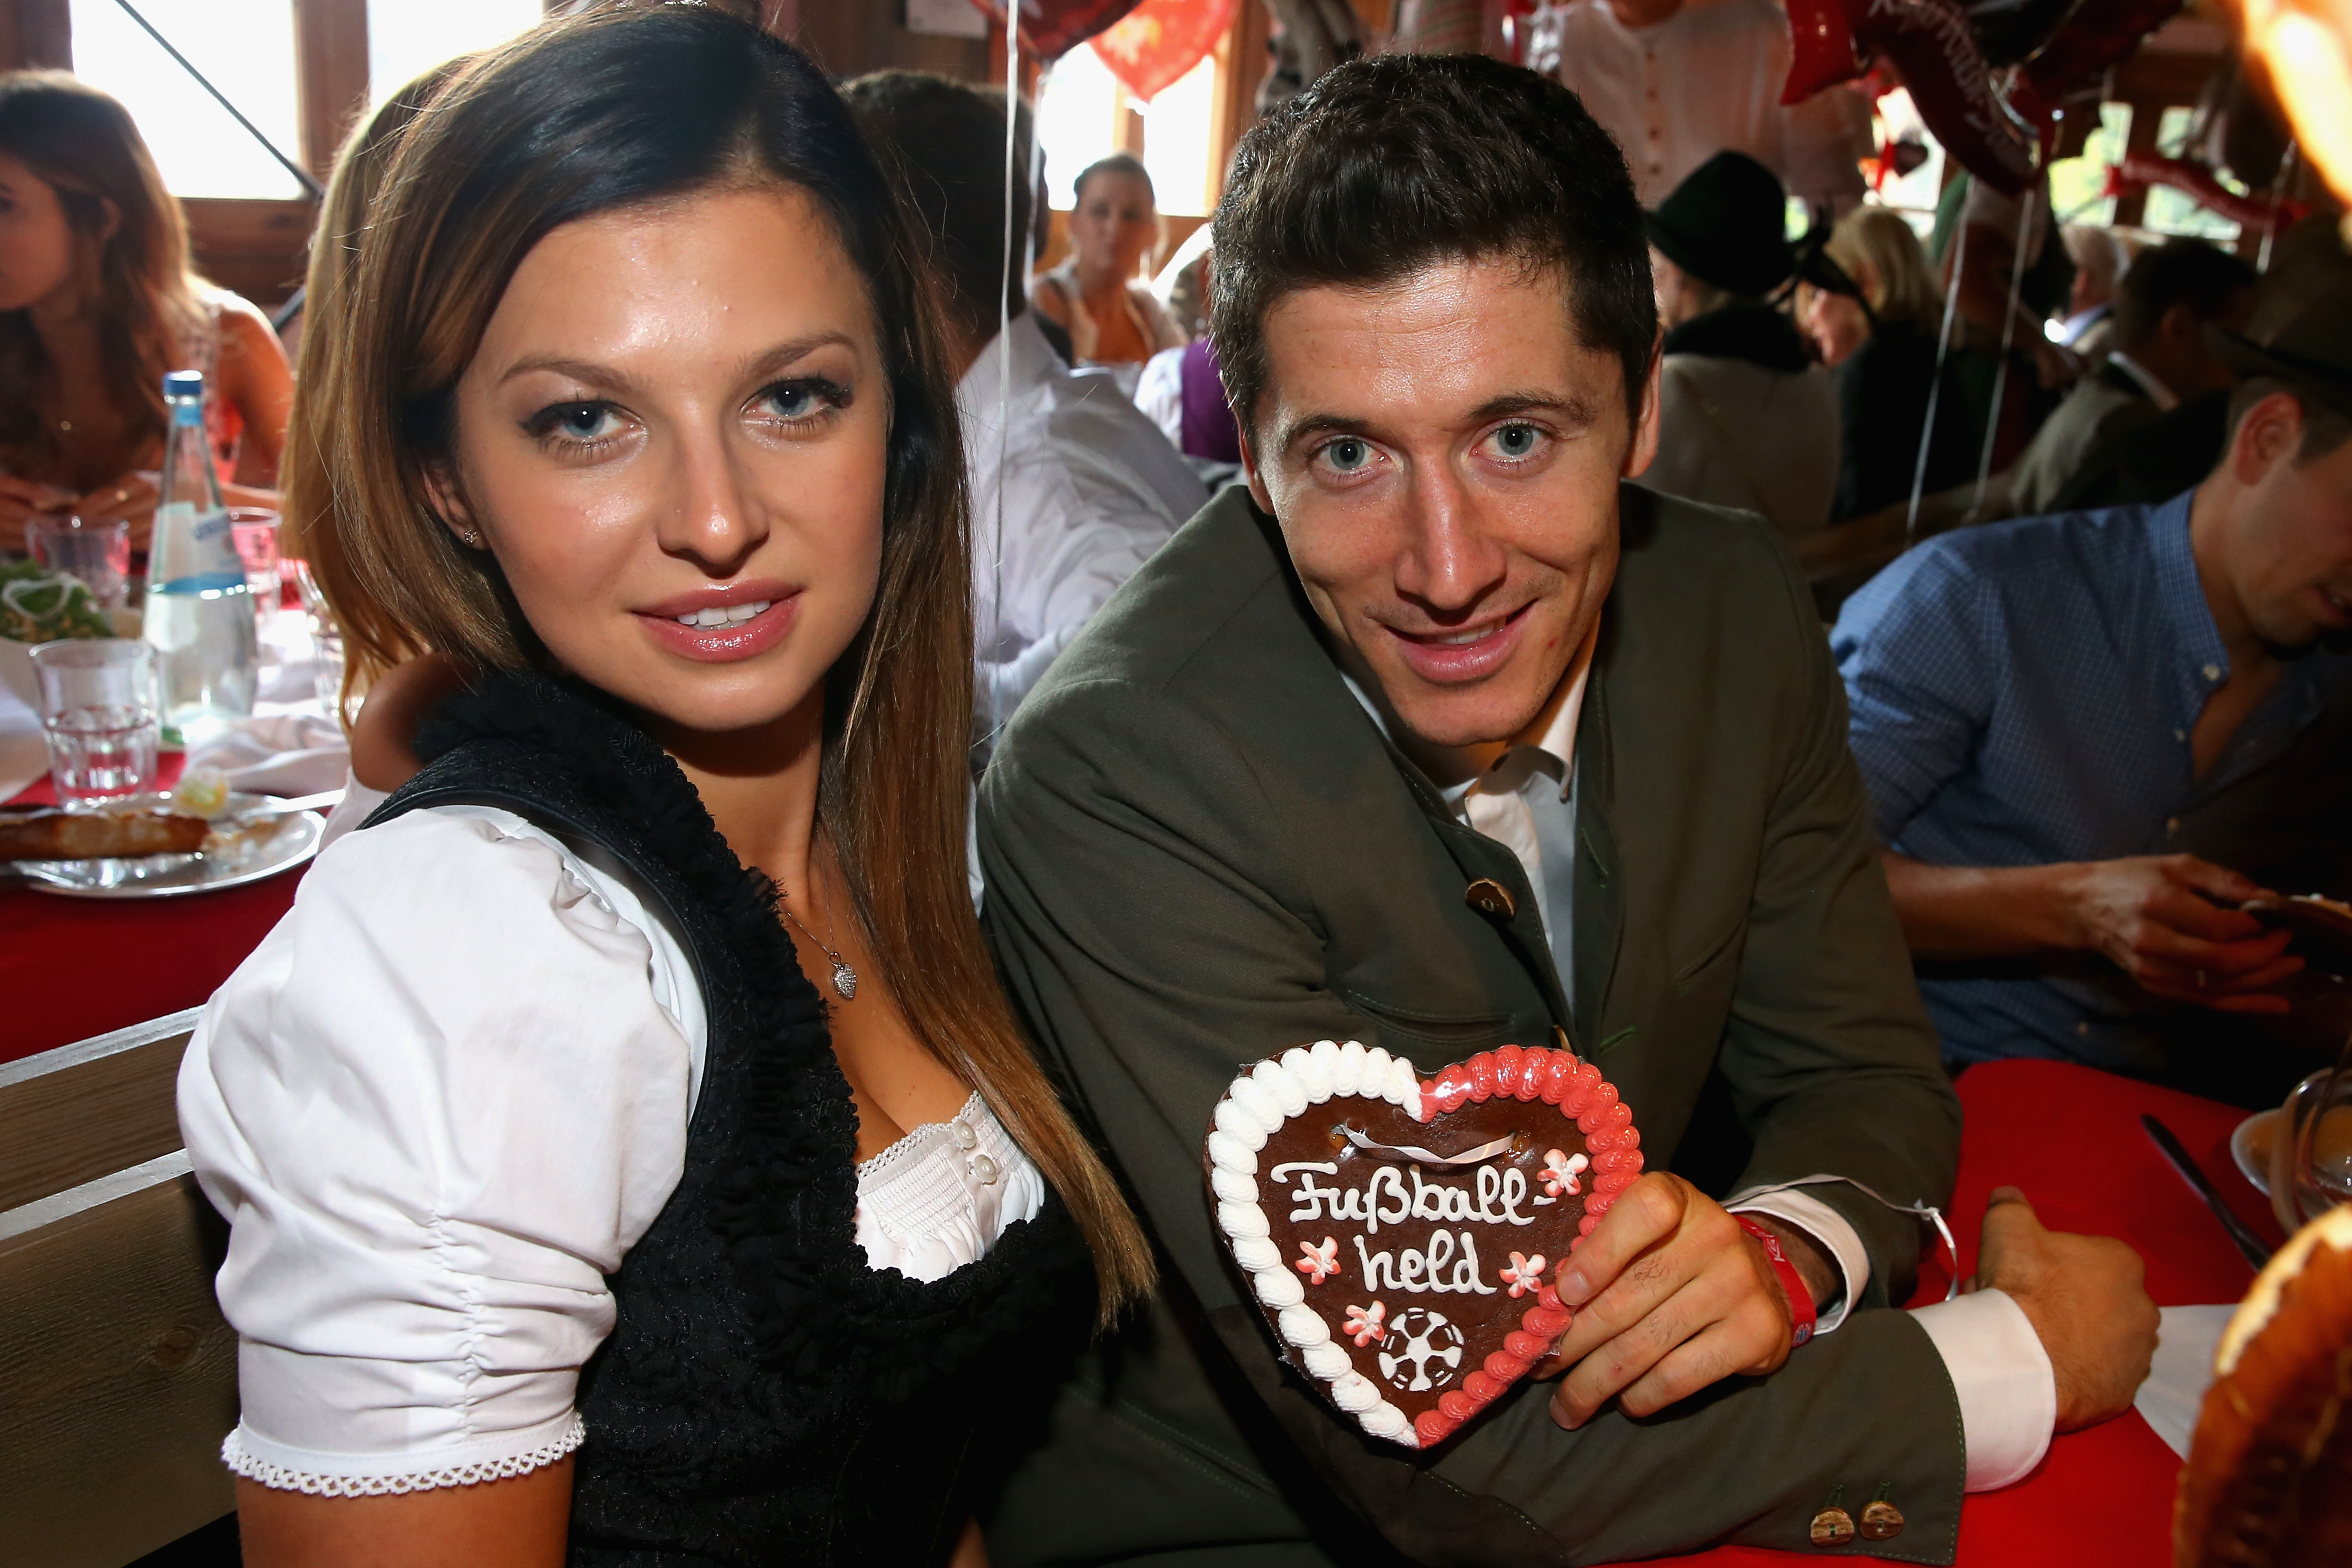 Bayern's Robert Lewandowski and his partner Anna Stachurska, left, pose for a photograph as the players of FC Bayern Munich v